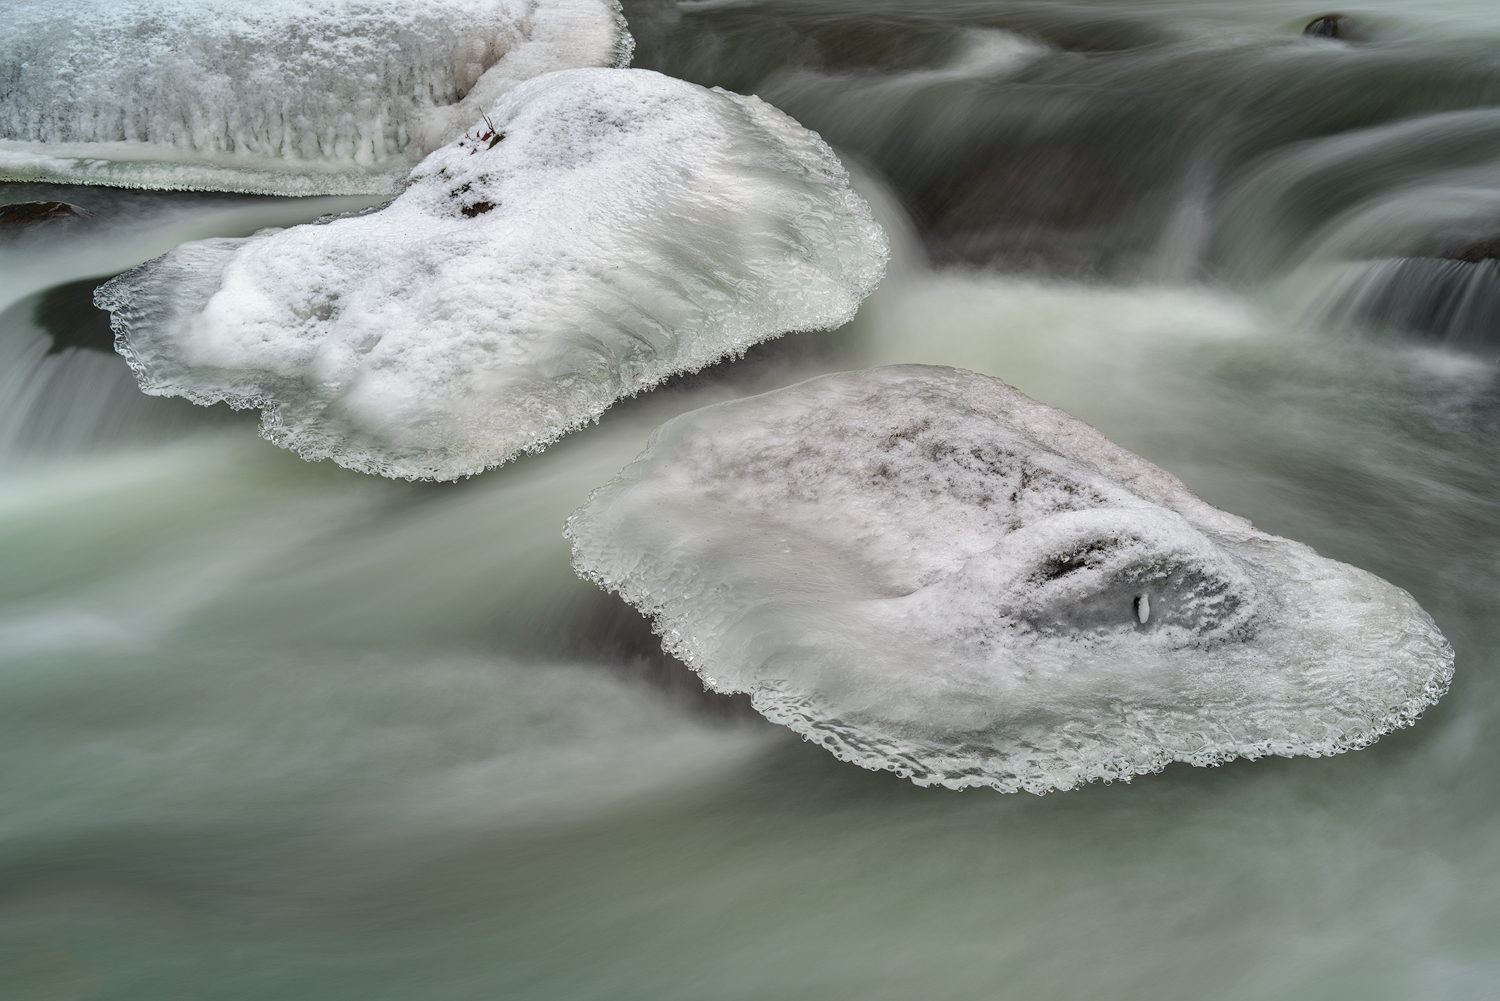 Winter ice forms over top of rocks within the icy flow.